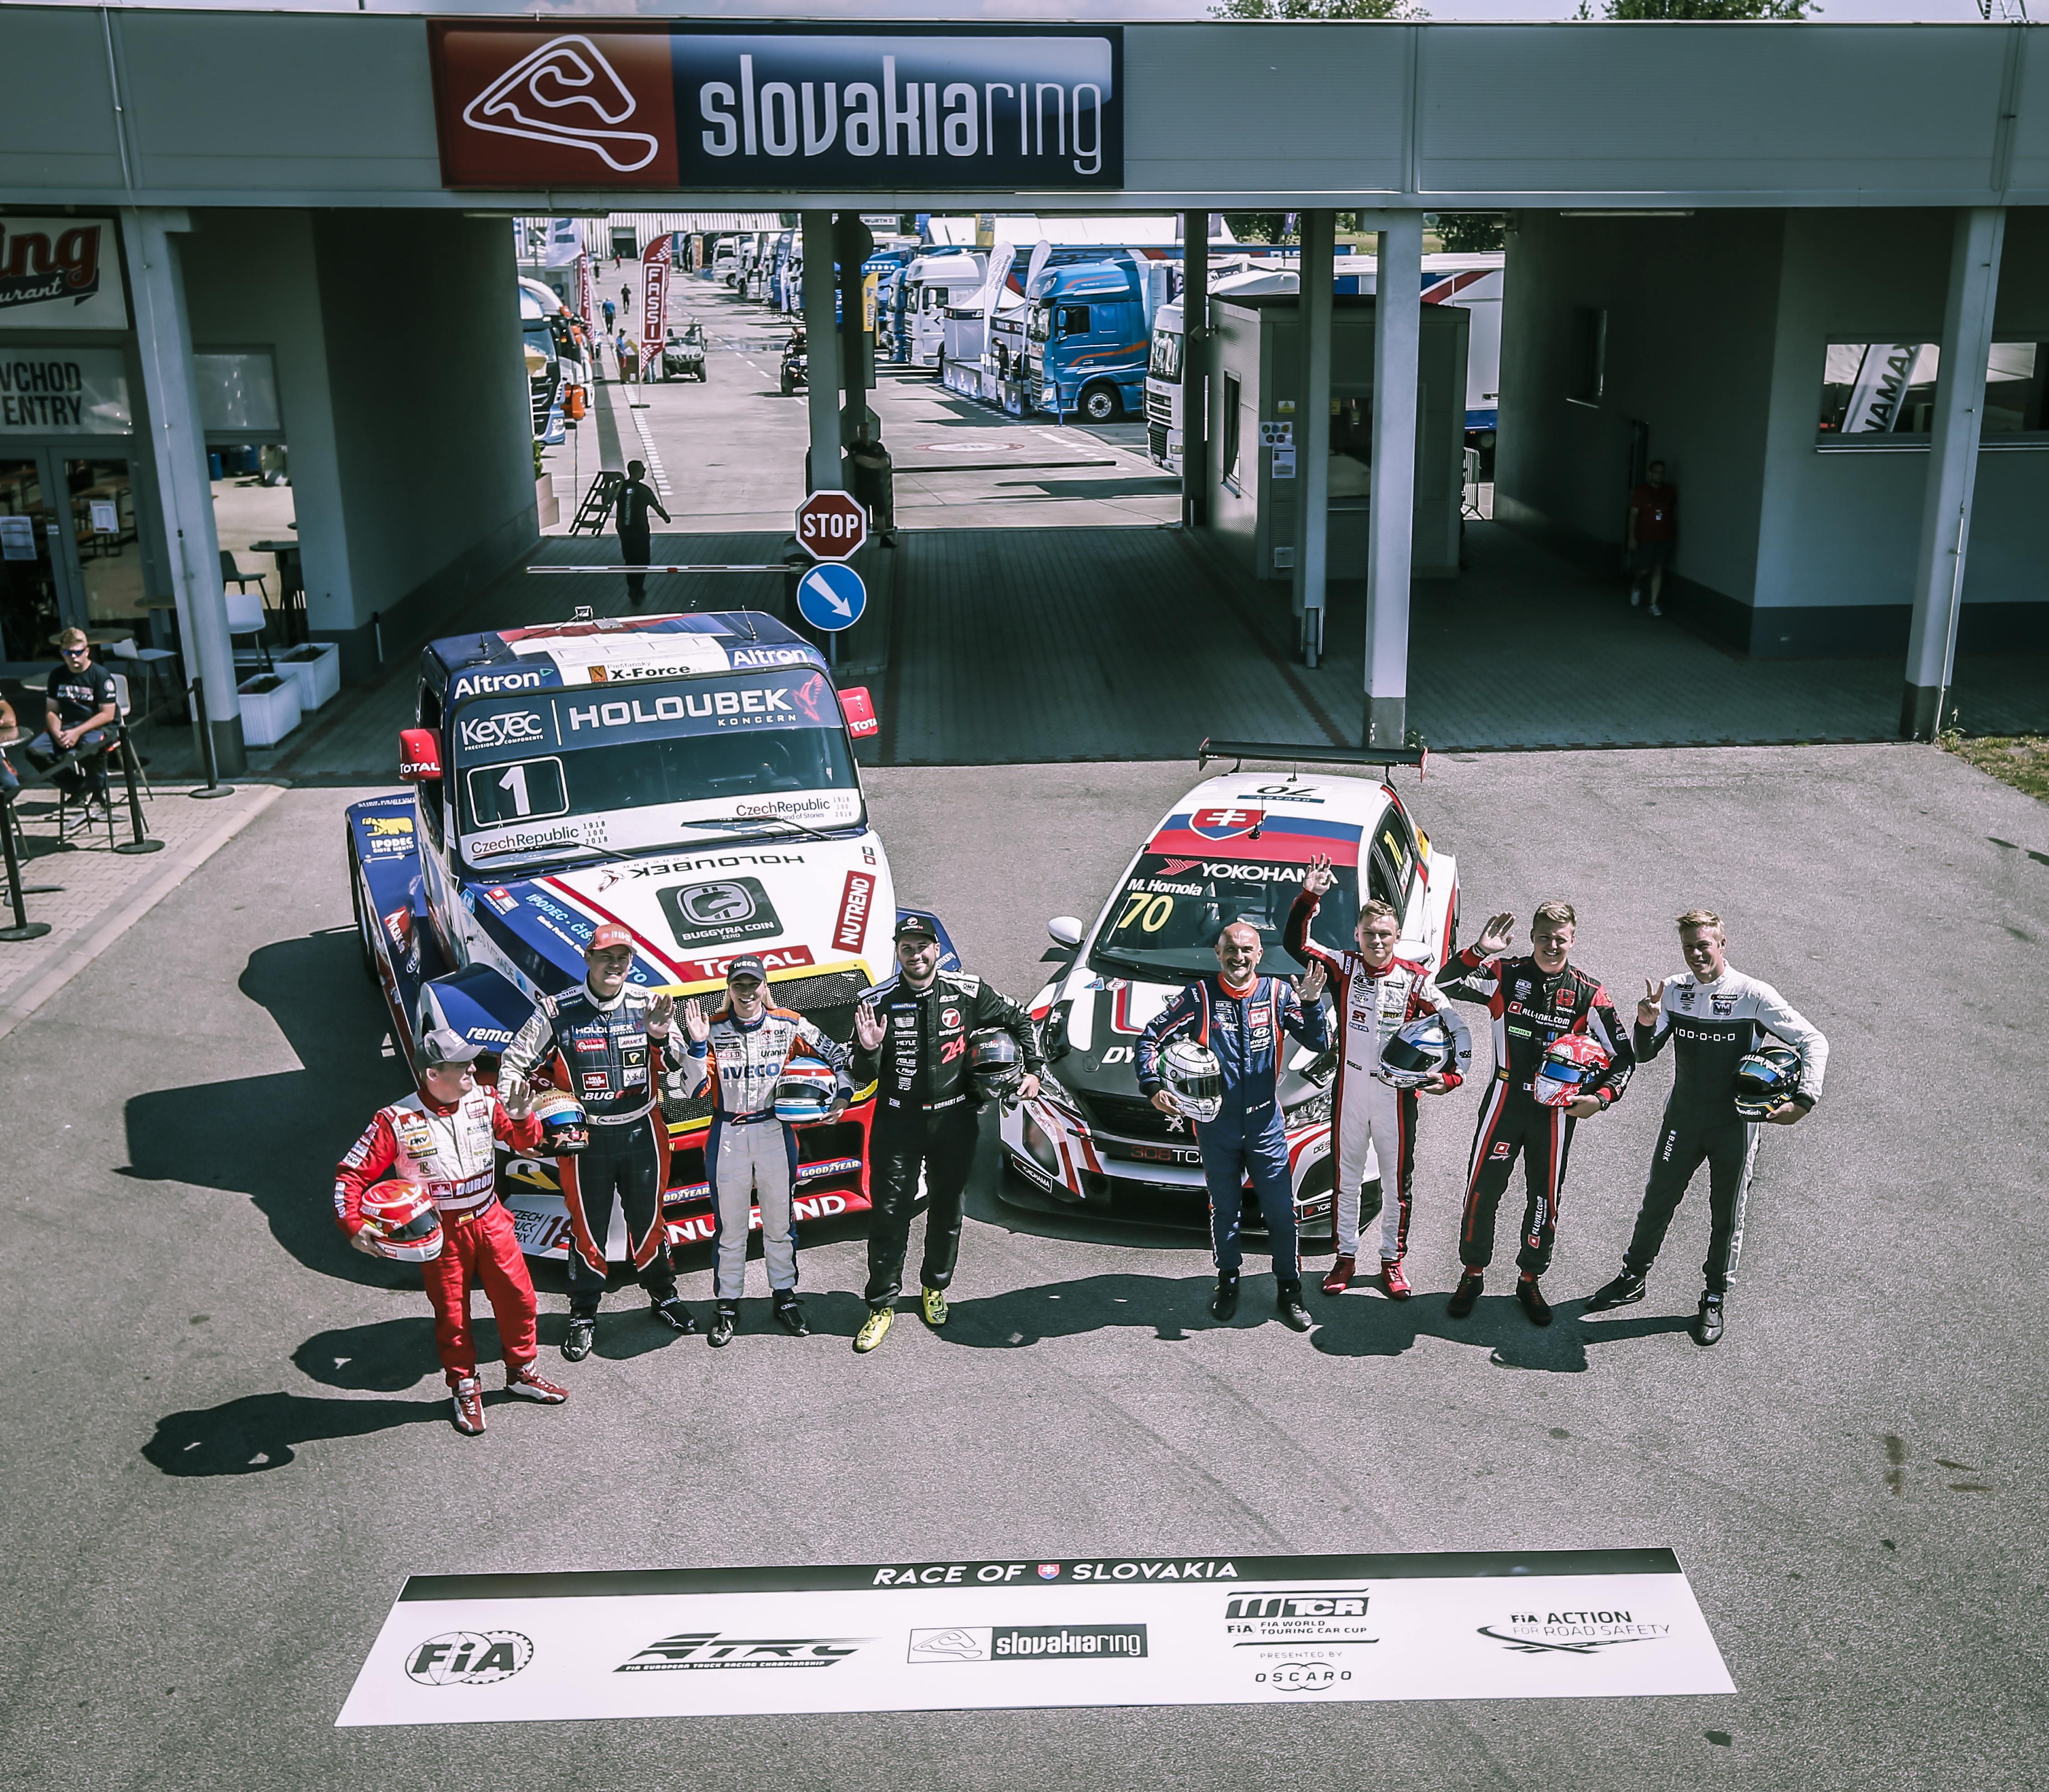 When two FIA championships united in Slovakia